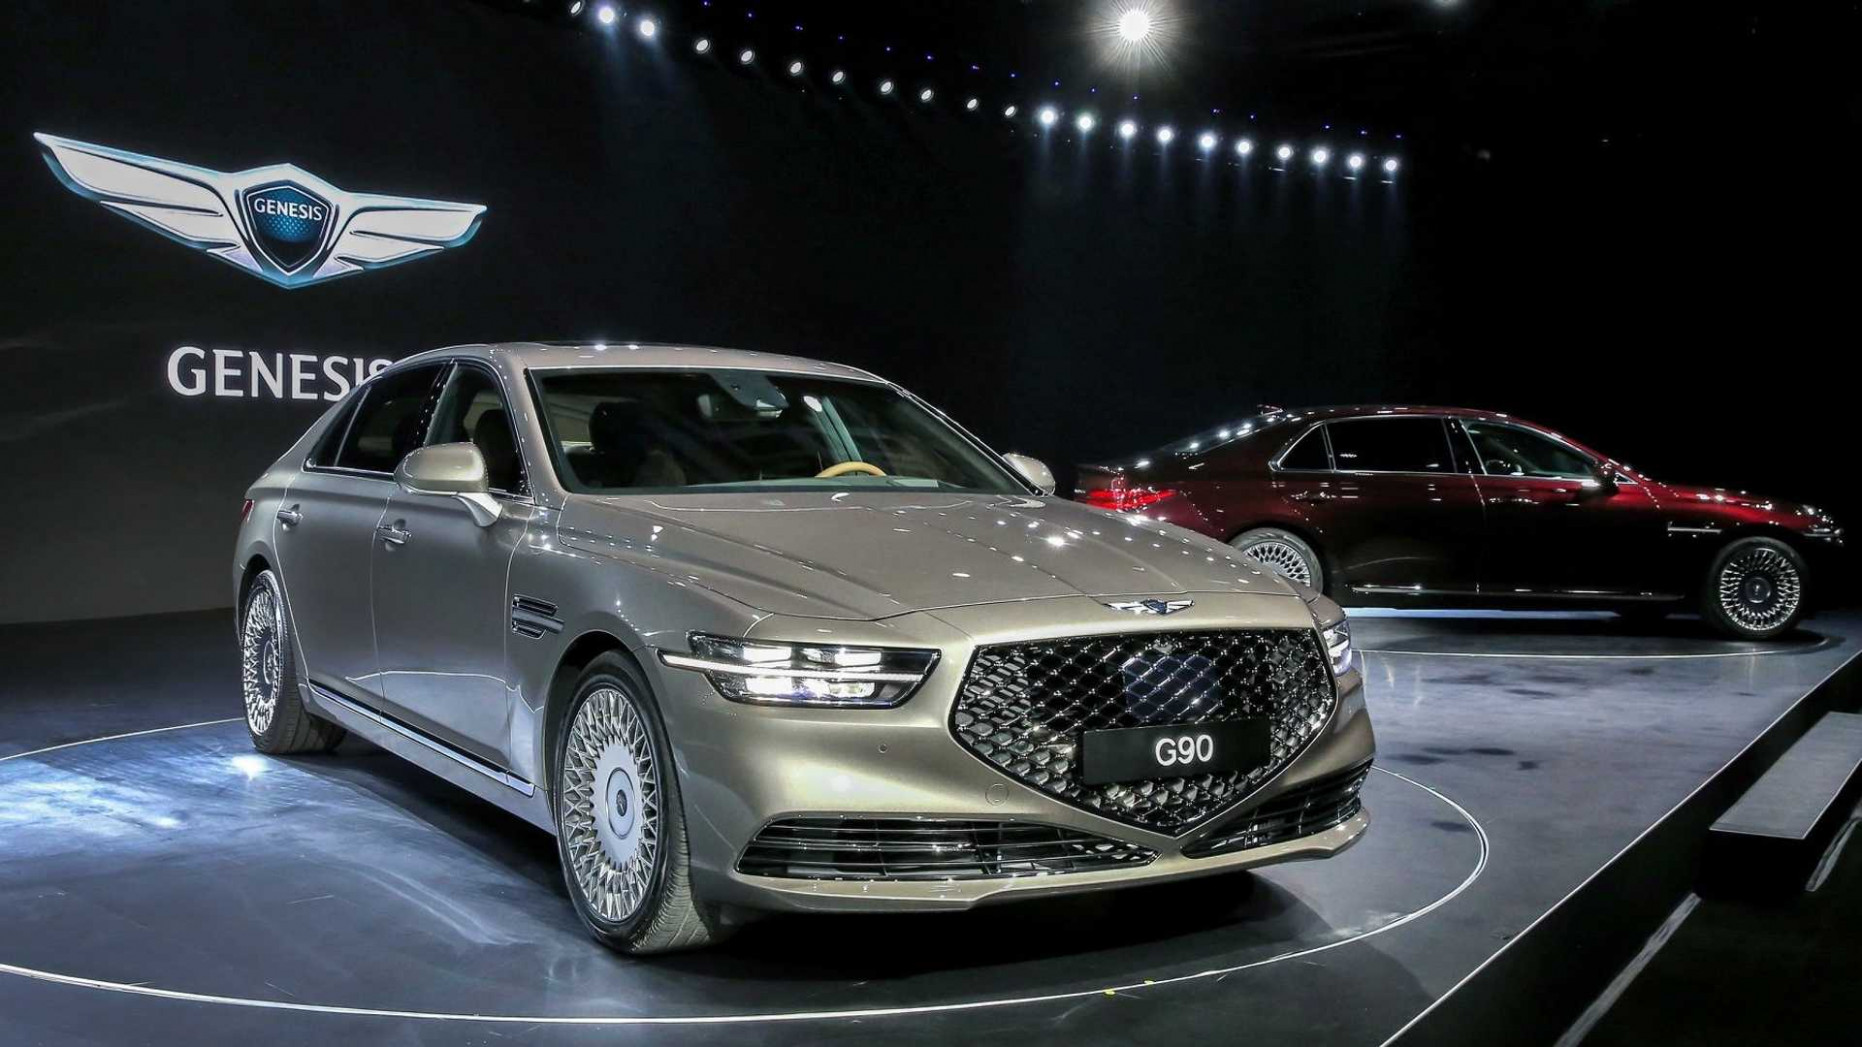 11 Genesis G11 Unveiled With Massive Design Changes - 2020 hyundai equus